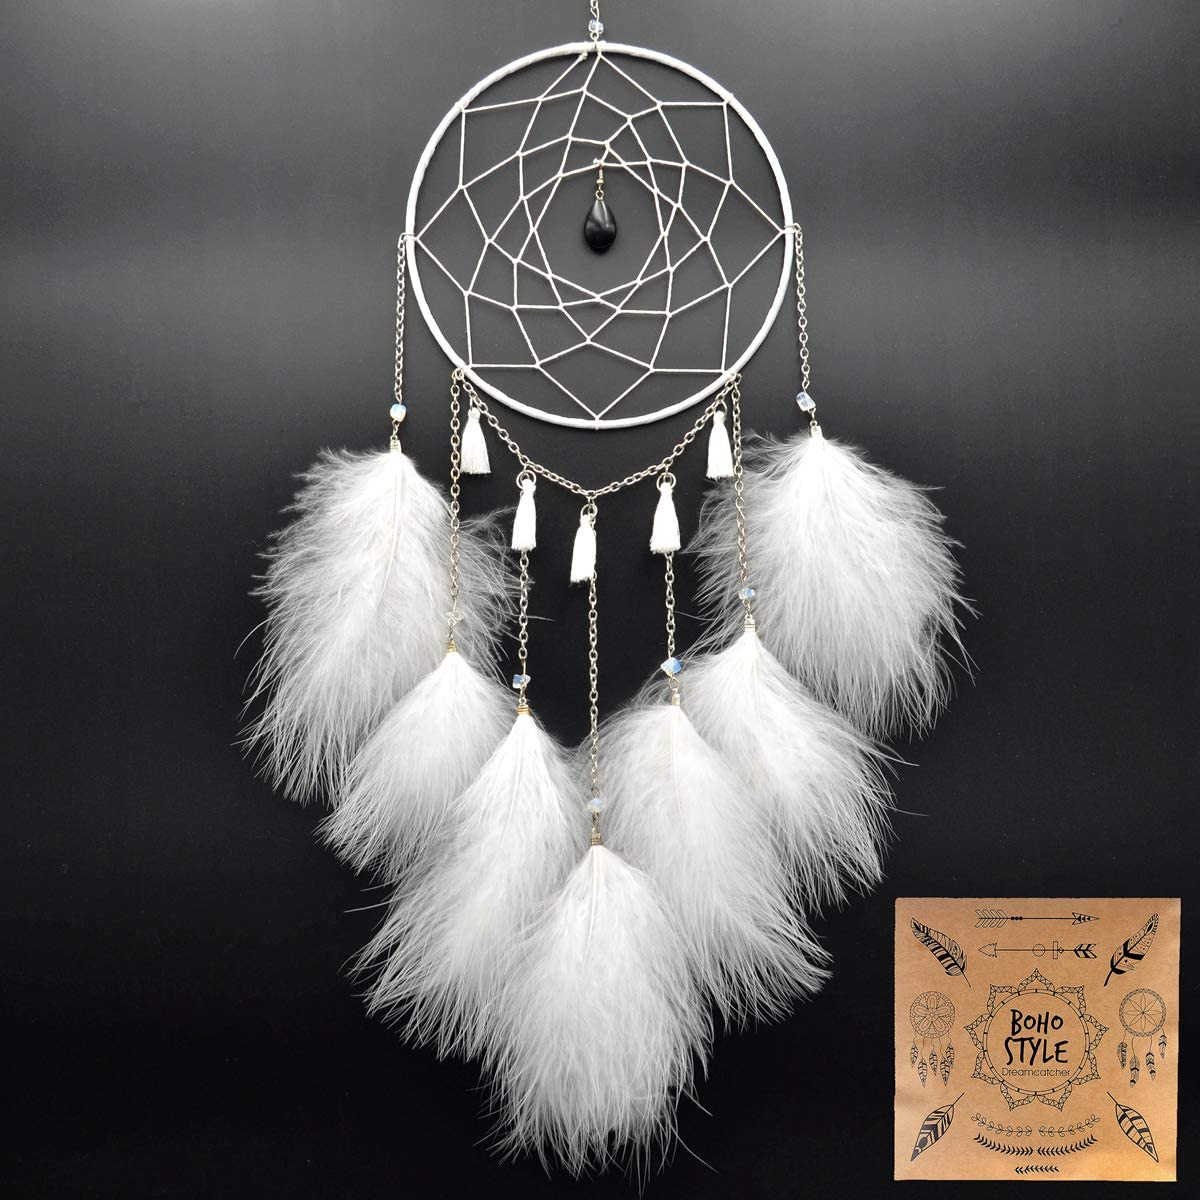 Urdeoms Dream Catcher White Wall Hanging Decoration with Obsidian Pendant Dream Catchers for Bedroom Dia 6(NO.027)